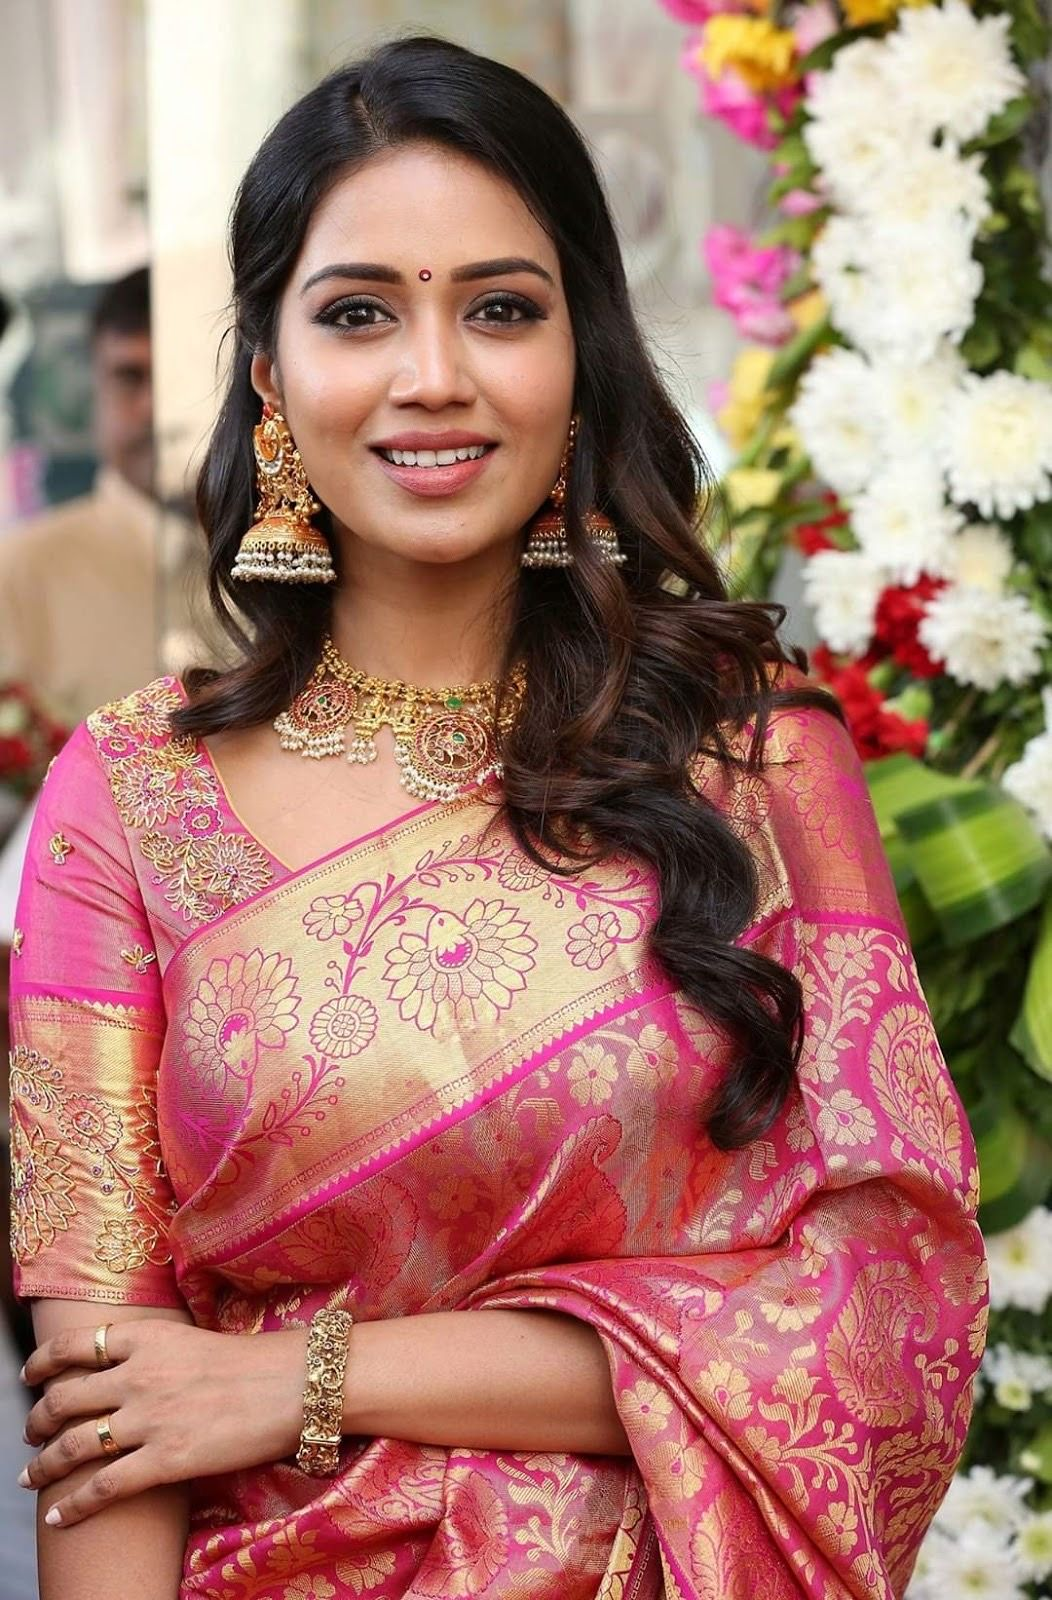 Pin by Rk on Beauty in 2020 | Set saree, Hairstyles kerala